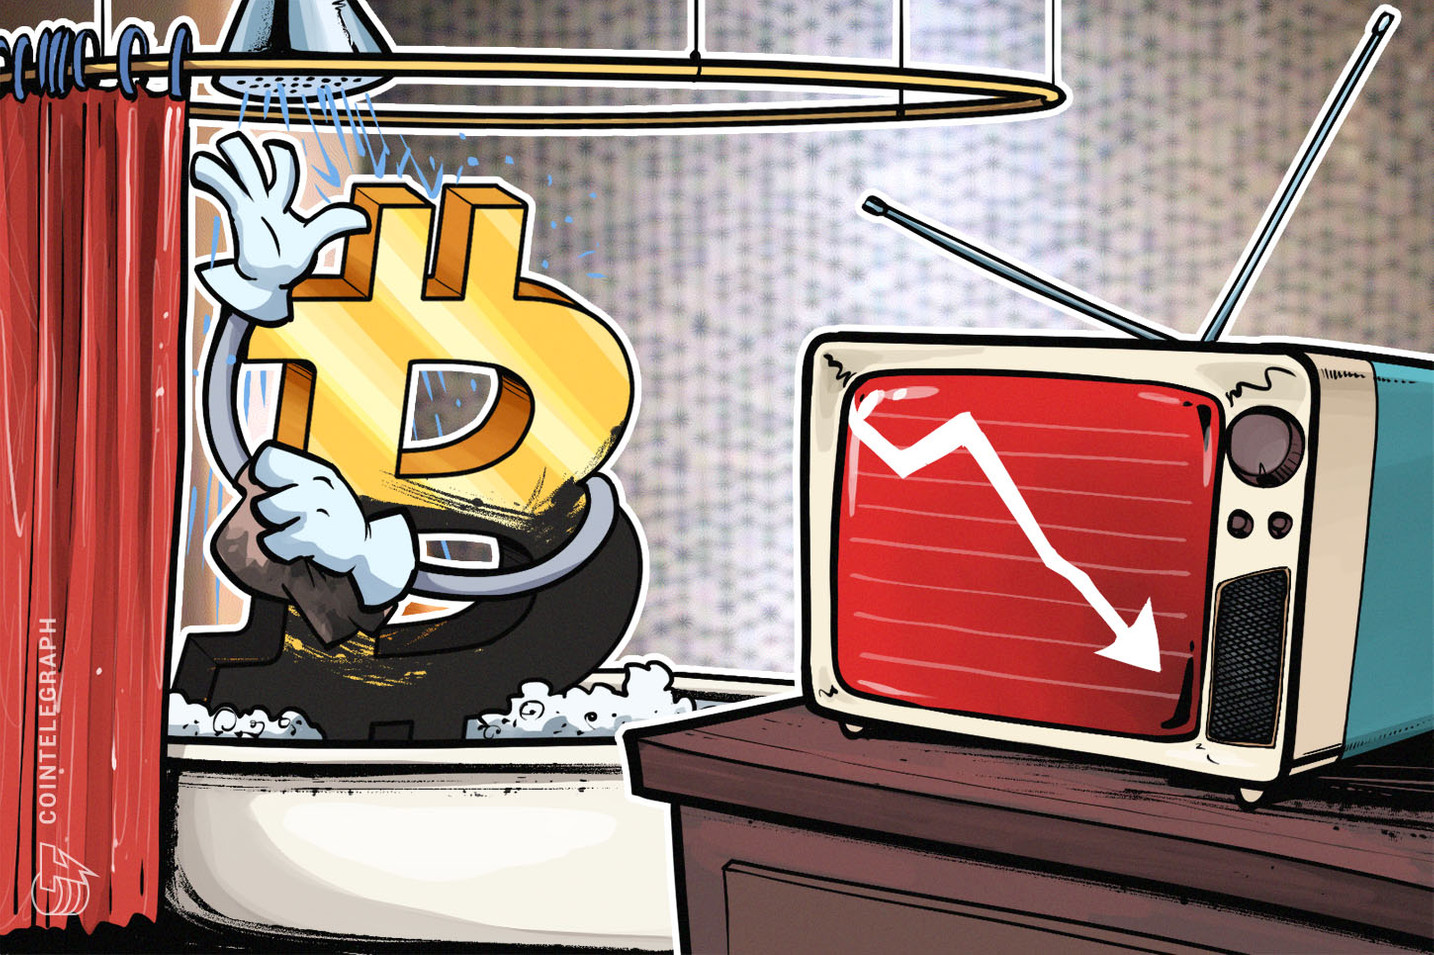 Bitcoin Falls Through $6,000 Support as Xapo President Warns of Altcoin 'Extinction Event'